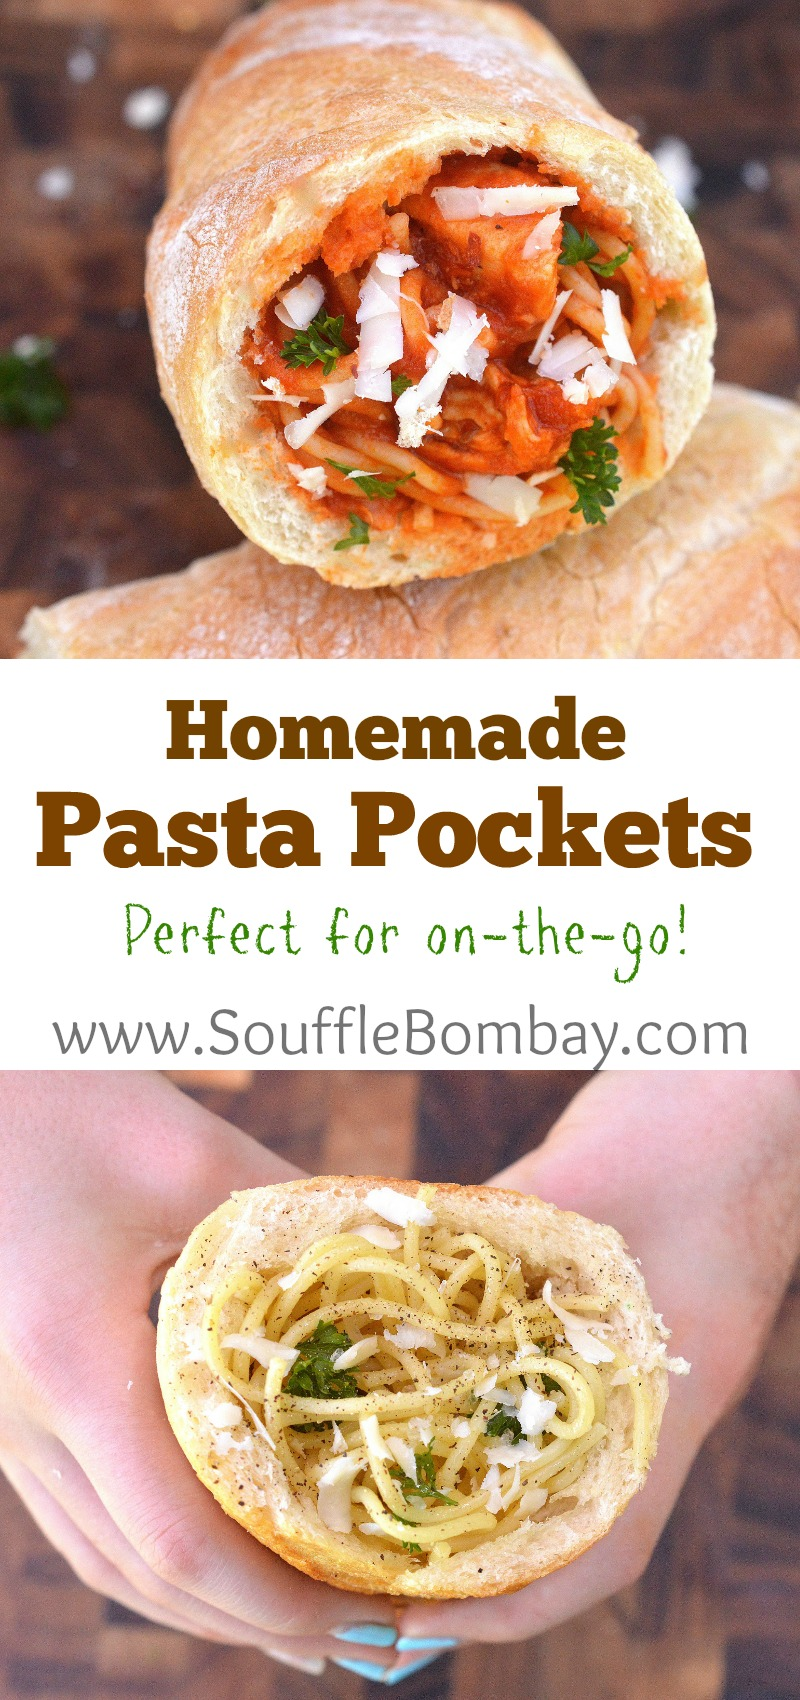 Homemade Pasta Pockets...Perfect for on the go. An inexpensive fun family meal you can feel good about serving your family!